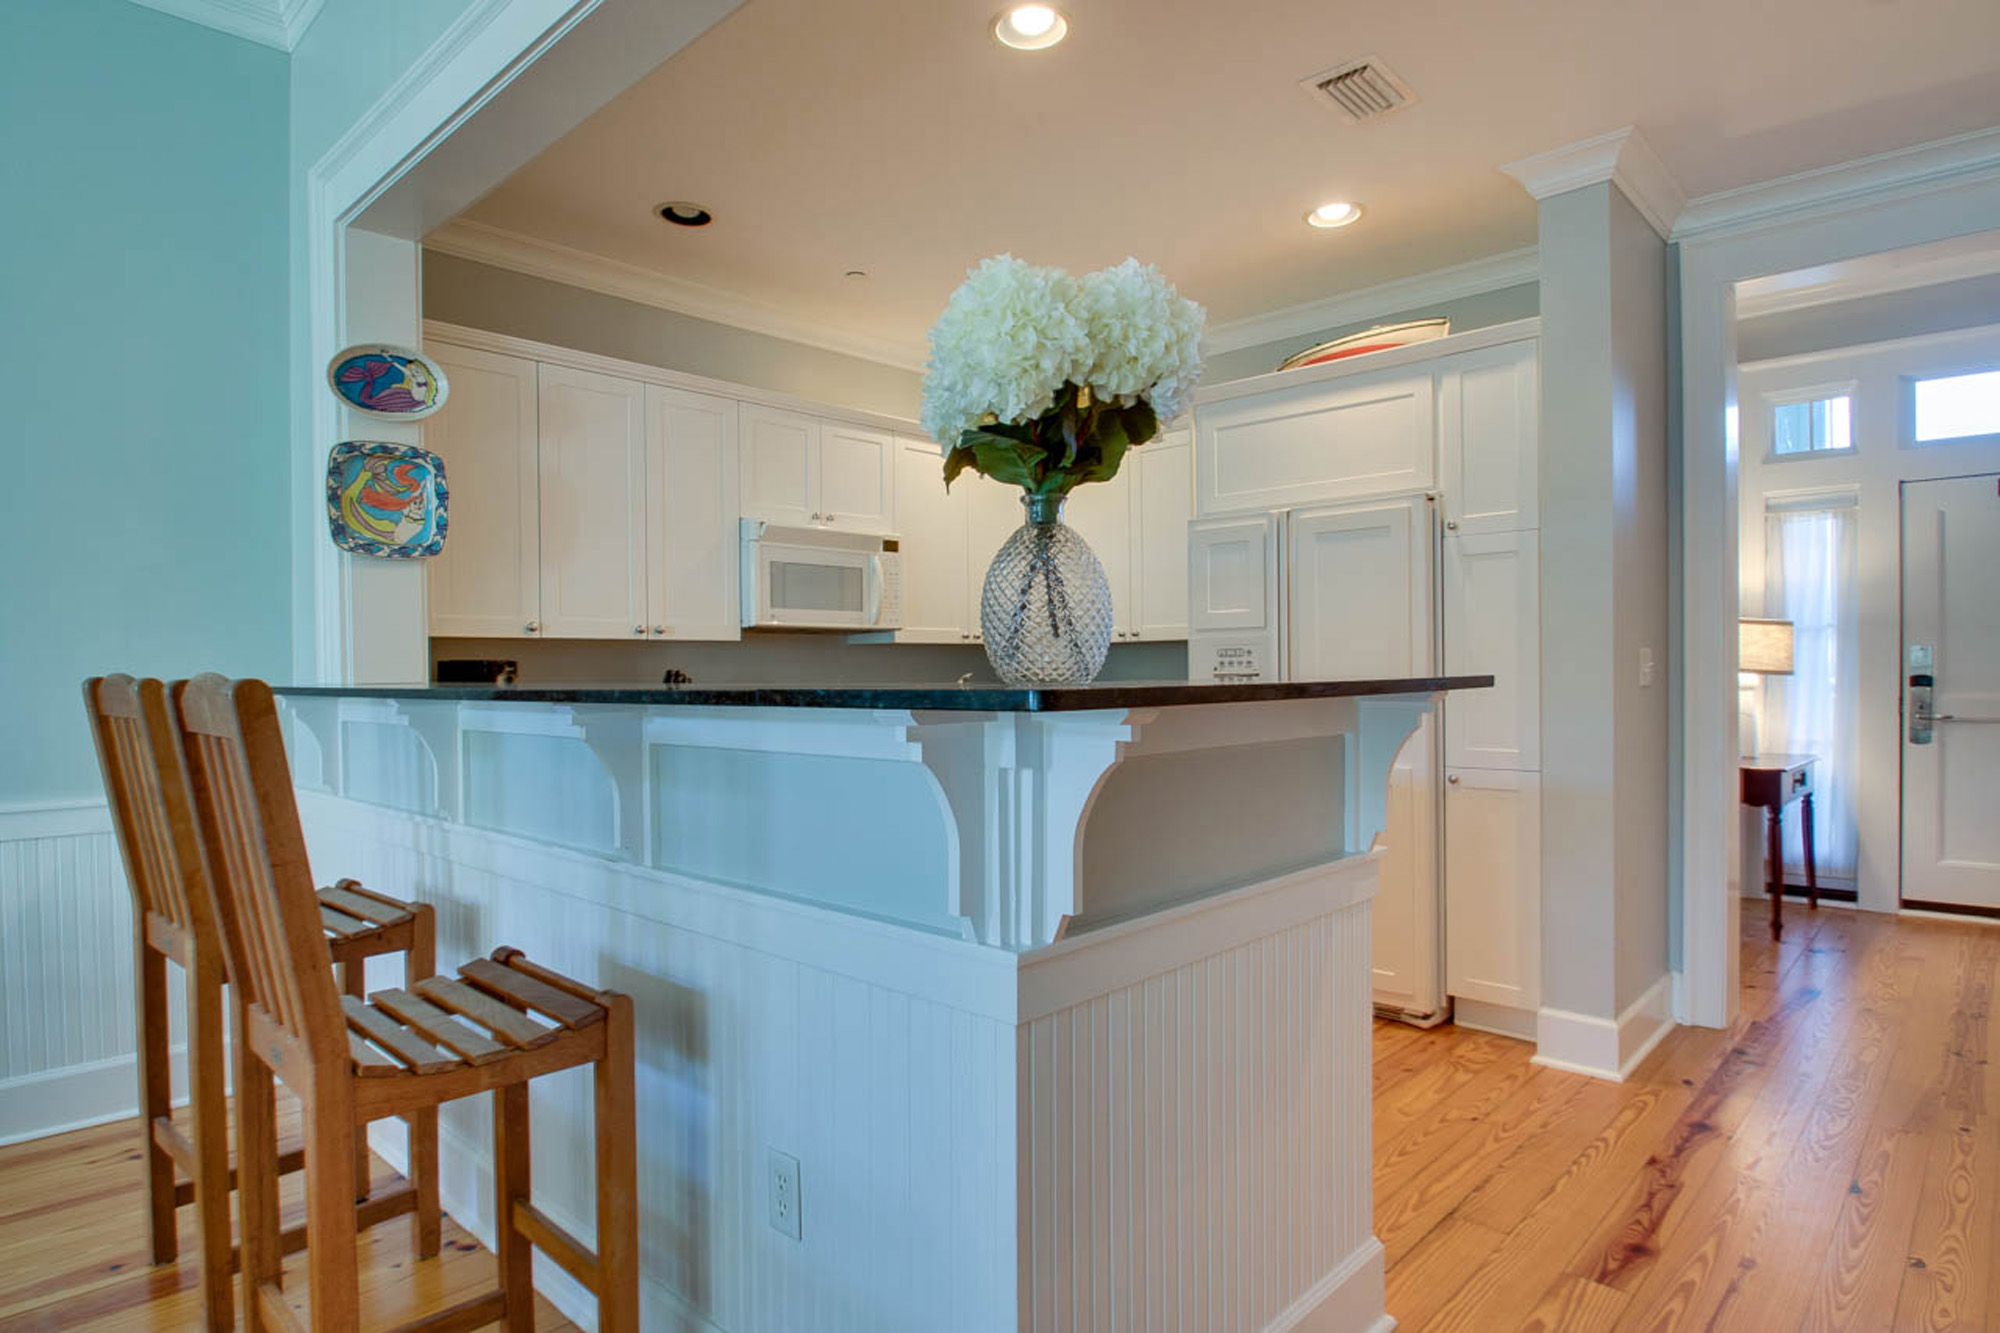 Kitchen and breakfast bar with two barstools.